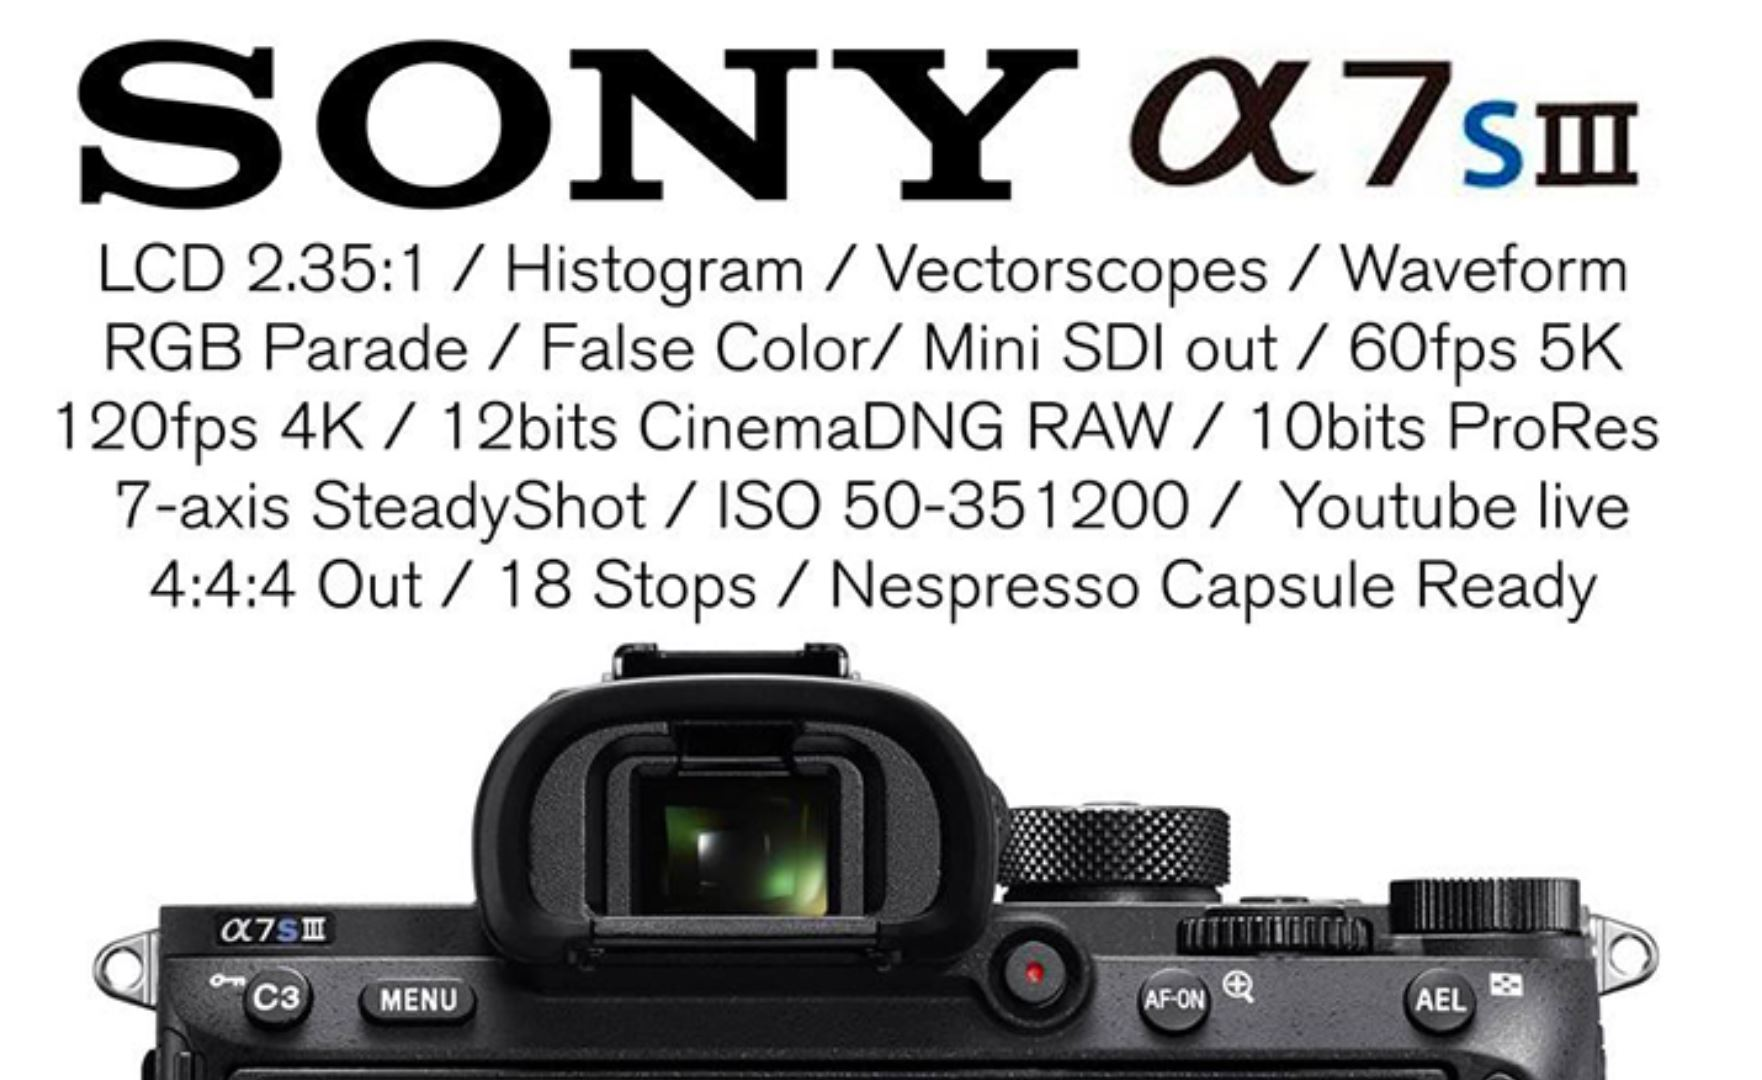 Sony a7S III Rumored to Have Stacked Image Sensor w